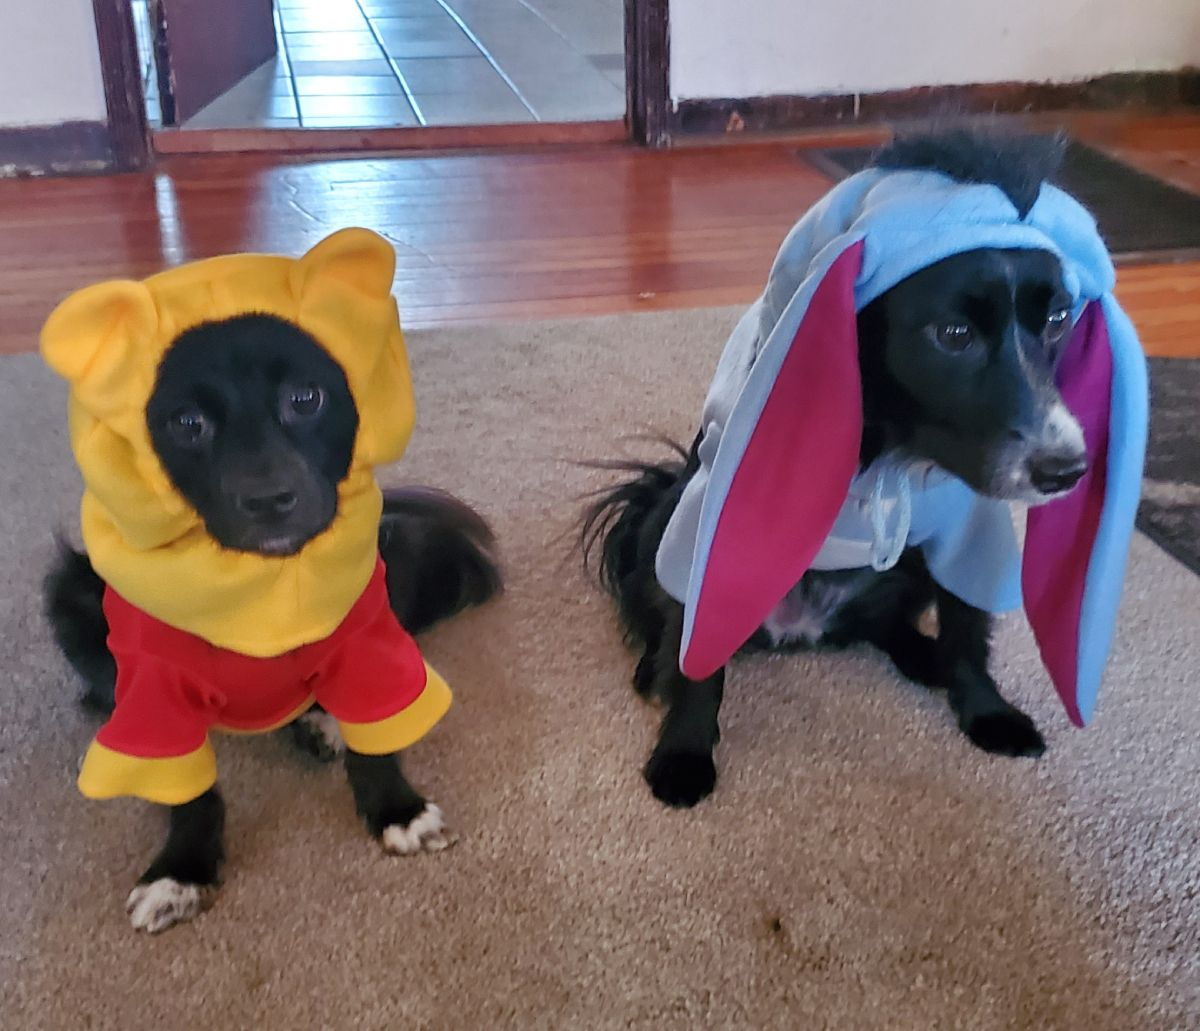 Pixie as Eeyore and Karma as Winnie the Pooh